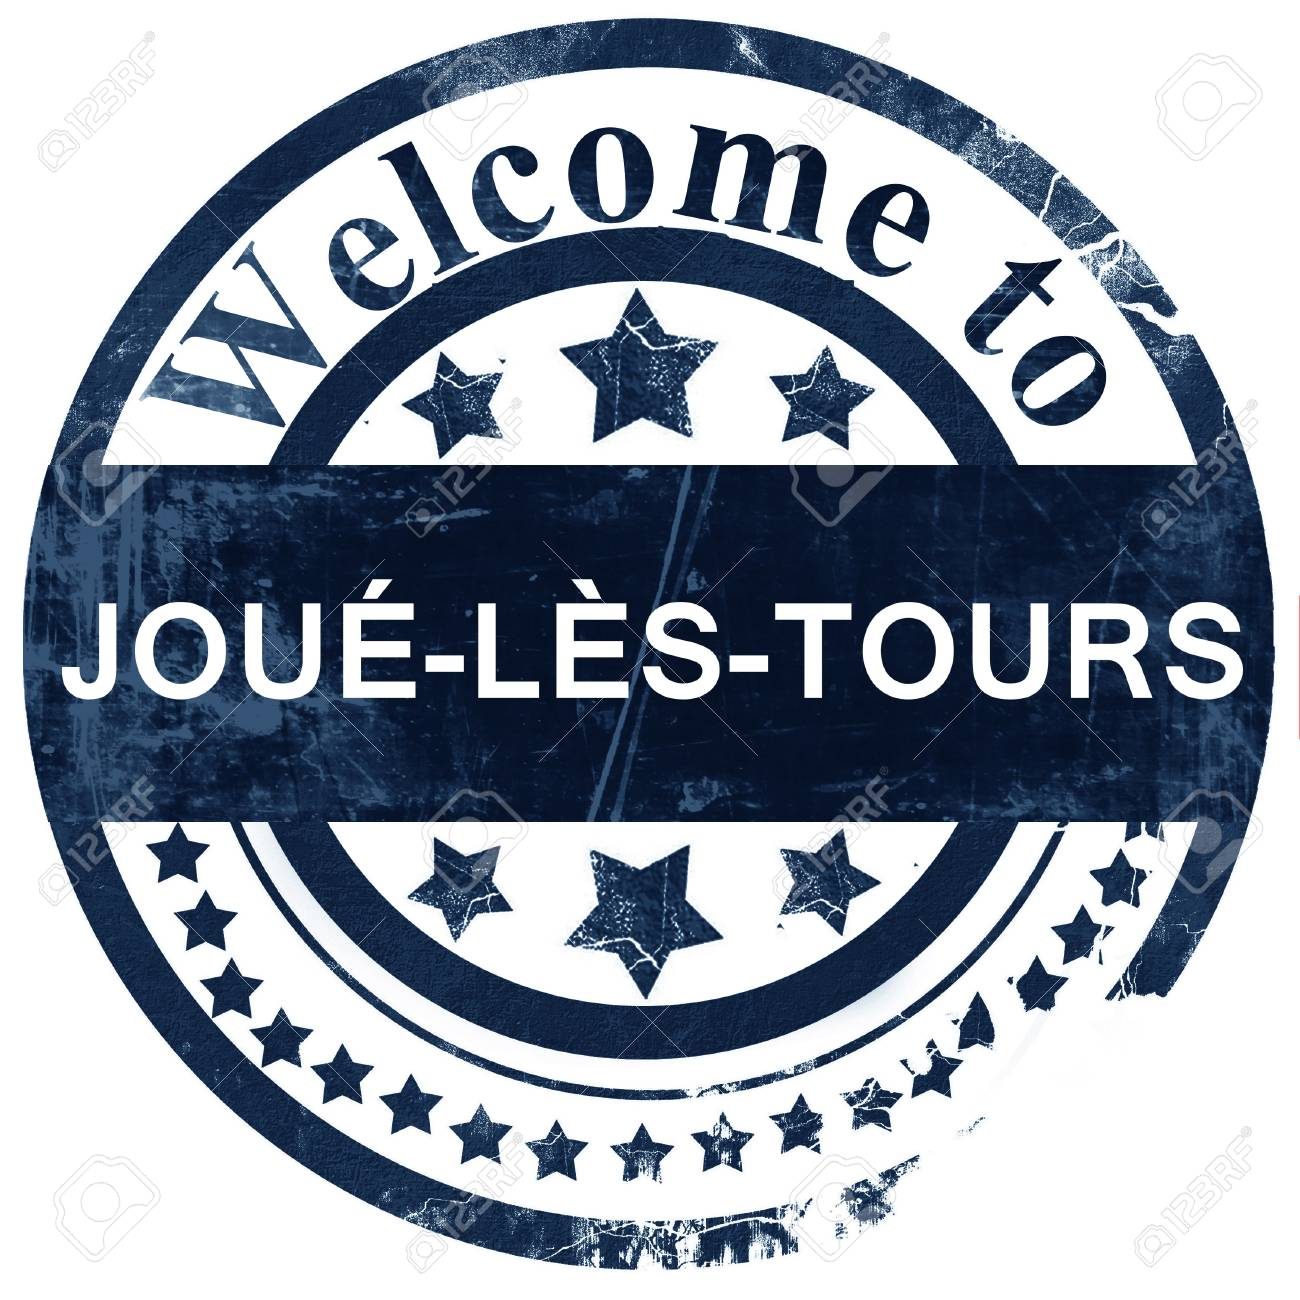 joue-les-tours stamp on white background - 69279875